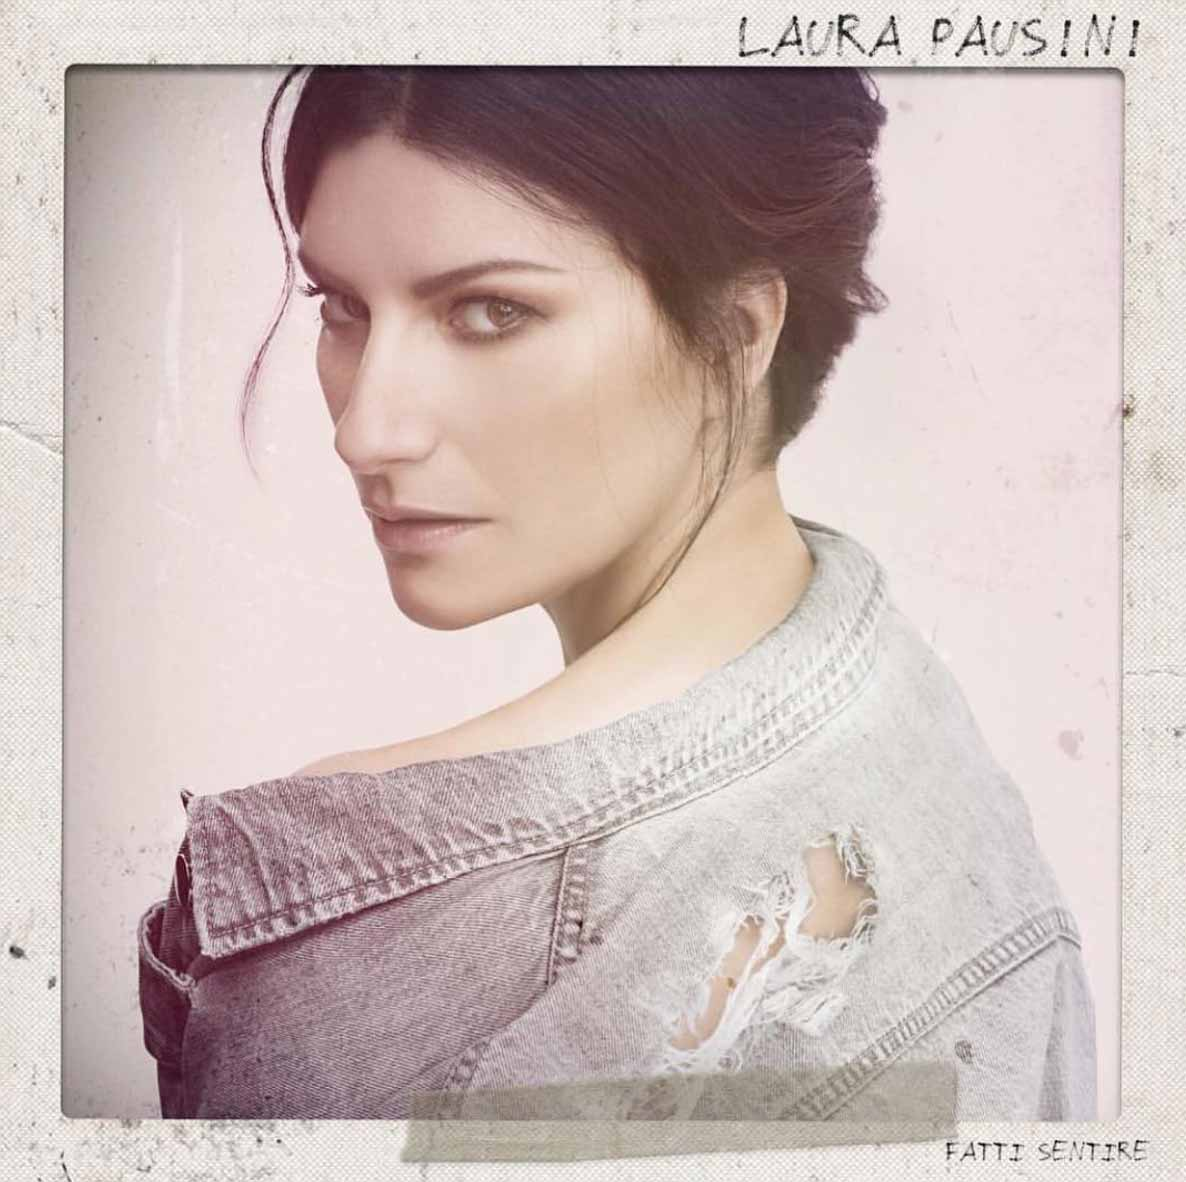 Laura Pausini carriera